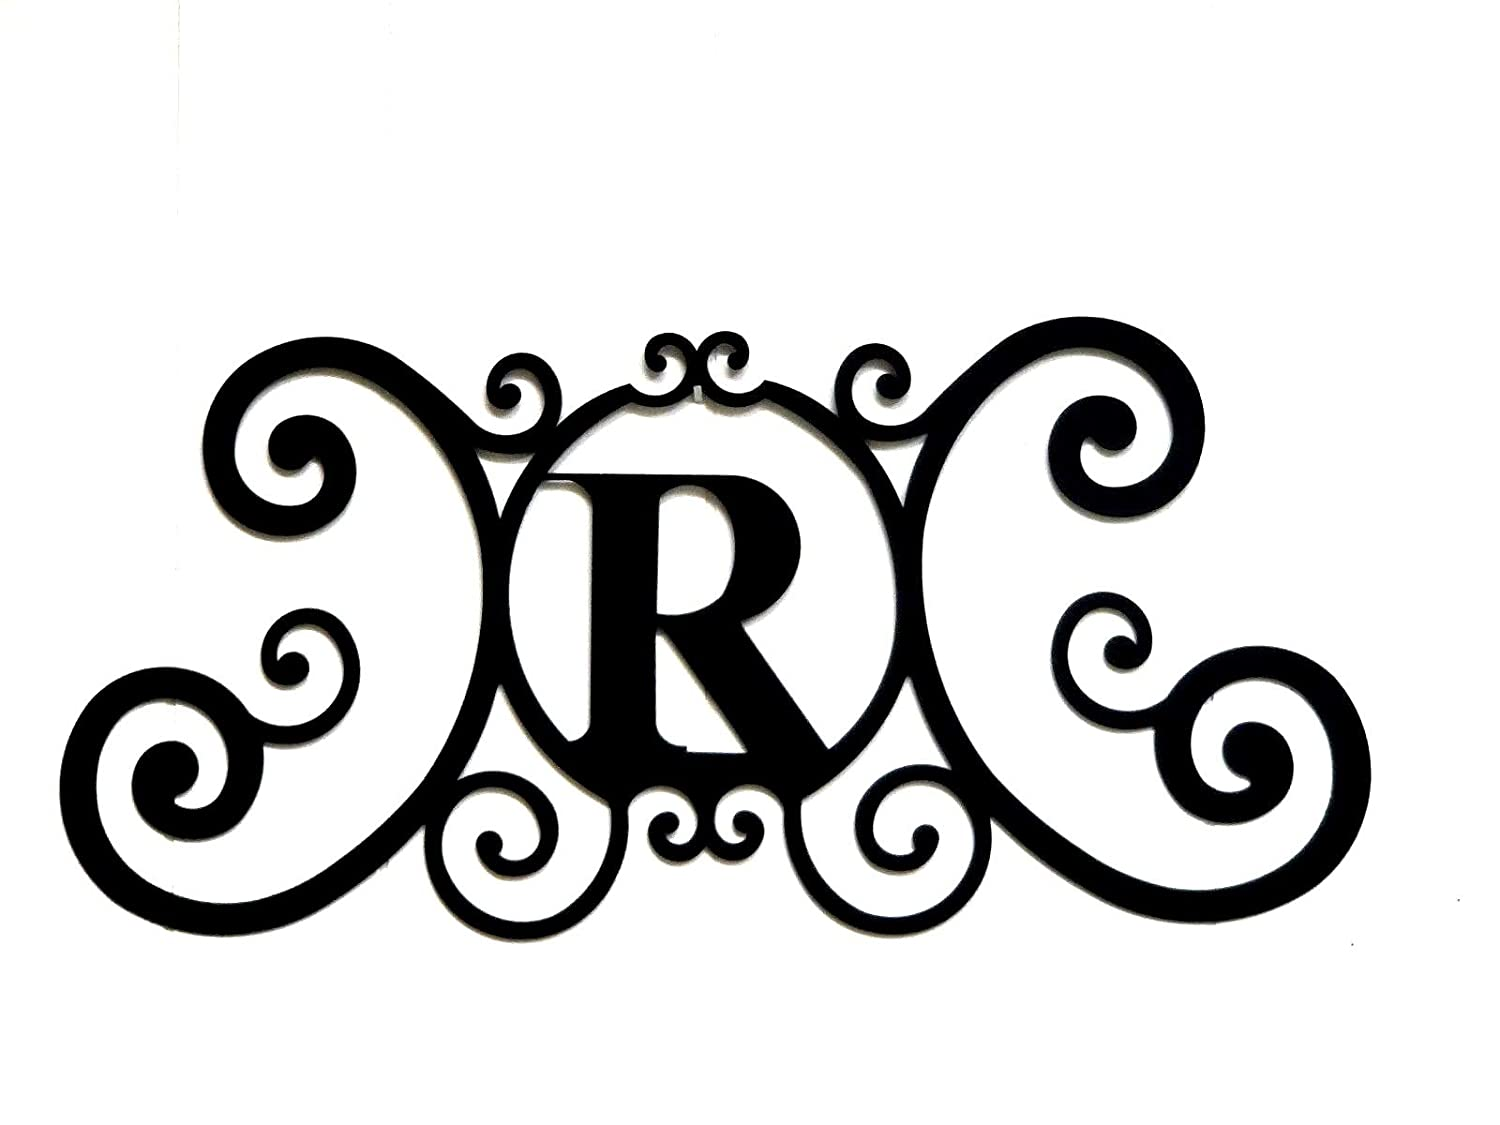 Bookishbunny Monogram Initial Letter A-Z Wrought Iron Metal Scrolled Door Wall Decoration Plaque Art, 24 x 11 inch 2mm Thick (R)